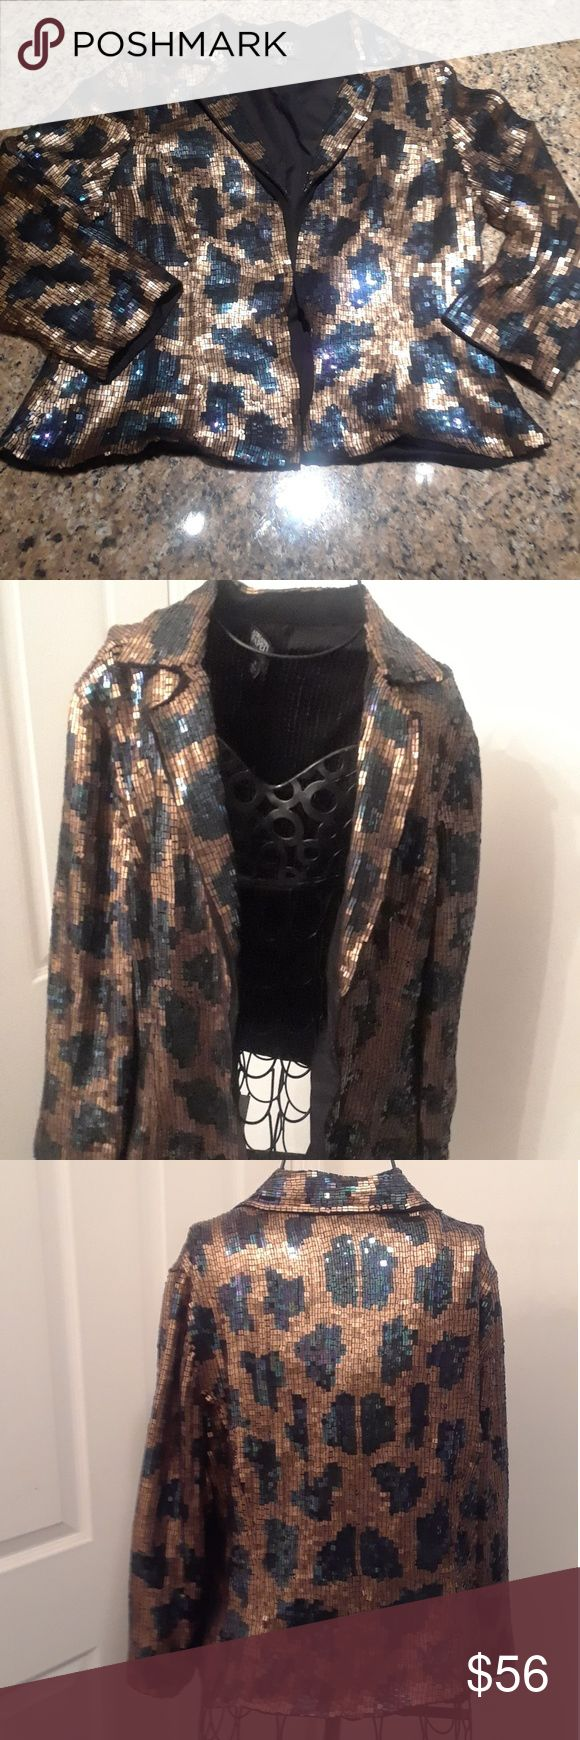 Adrianna  Papell Evening Essentials Sequin Jacket Crop animal print sequin evening jacket. Bracelet length sleeves. Dress up or down. Preloved, with few defects...see photos. Size 14, fits like size 12. Adrianna Papell Jackets & Coats